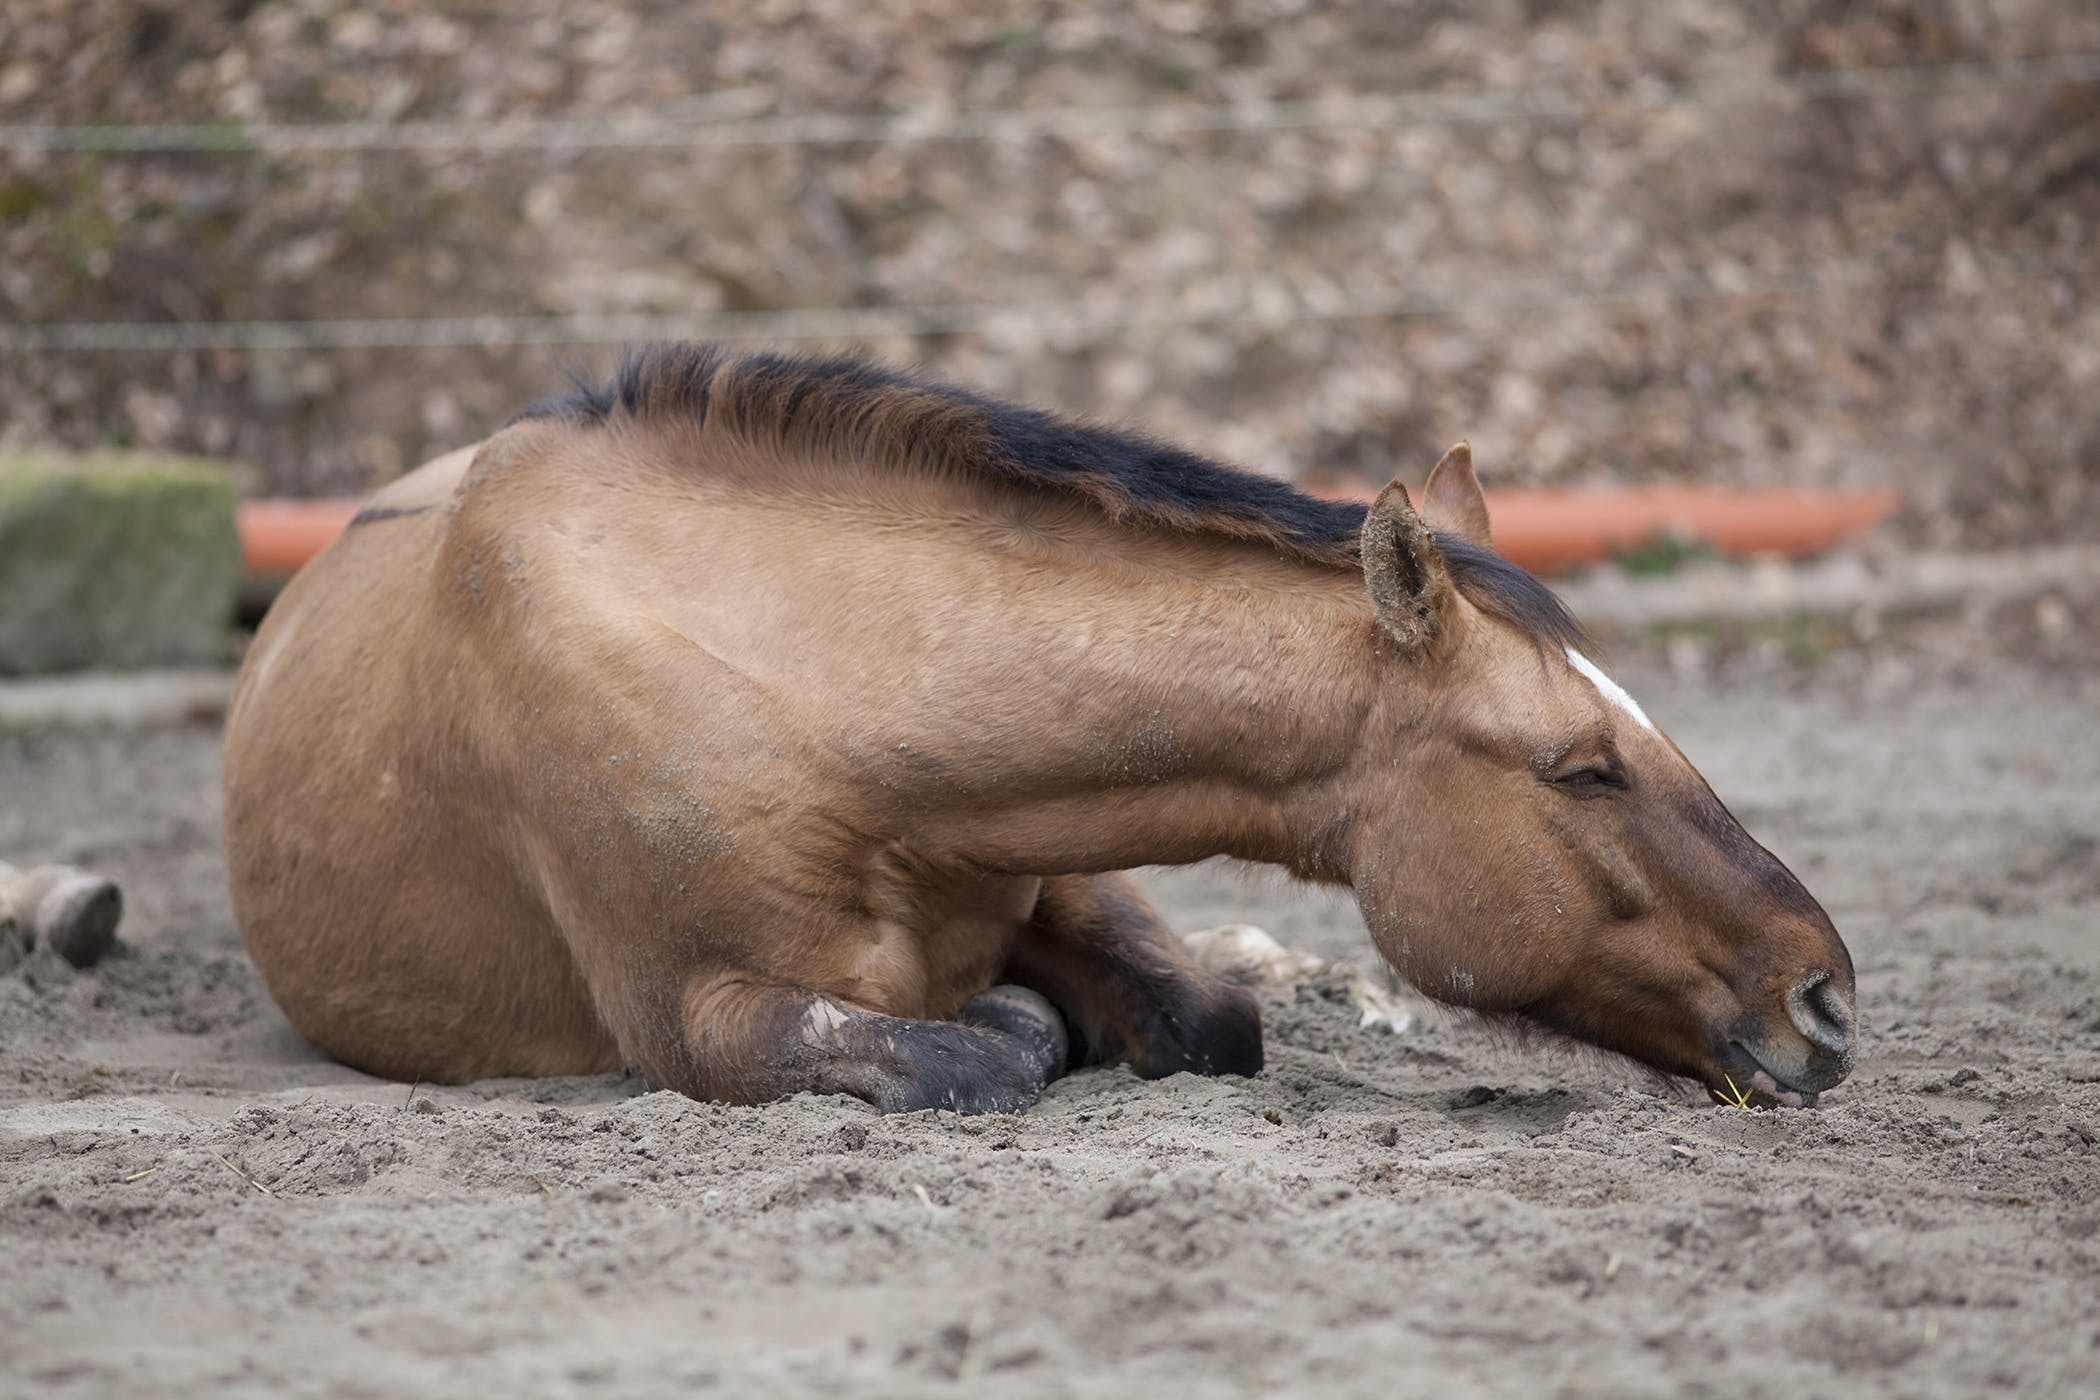 Chelation Therapy in Horses - Procedure, Efficacy, Recovery